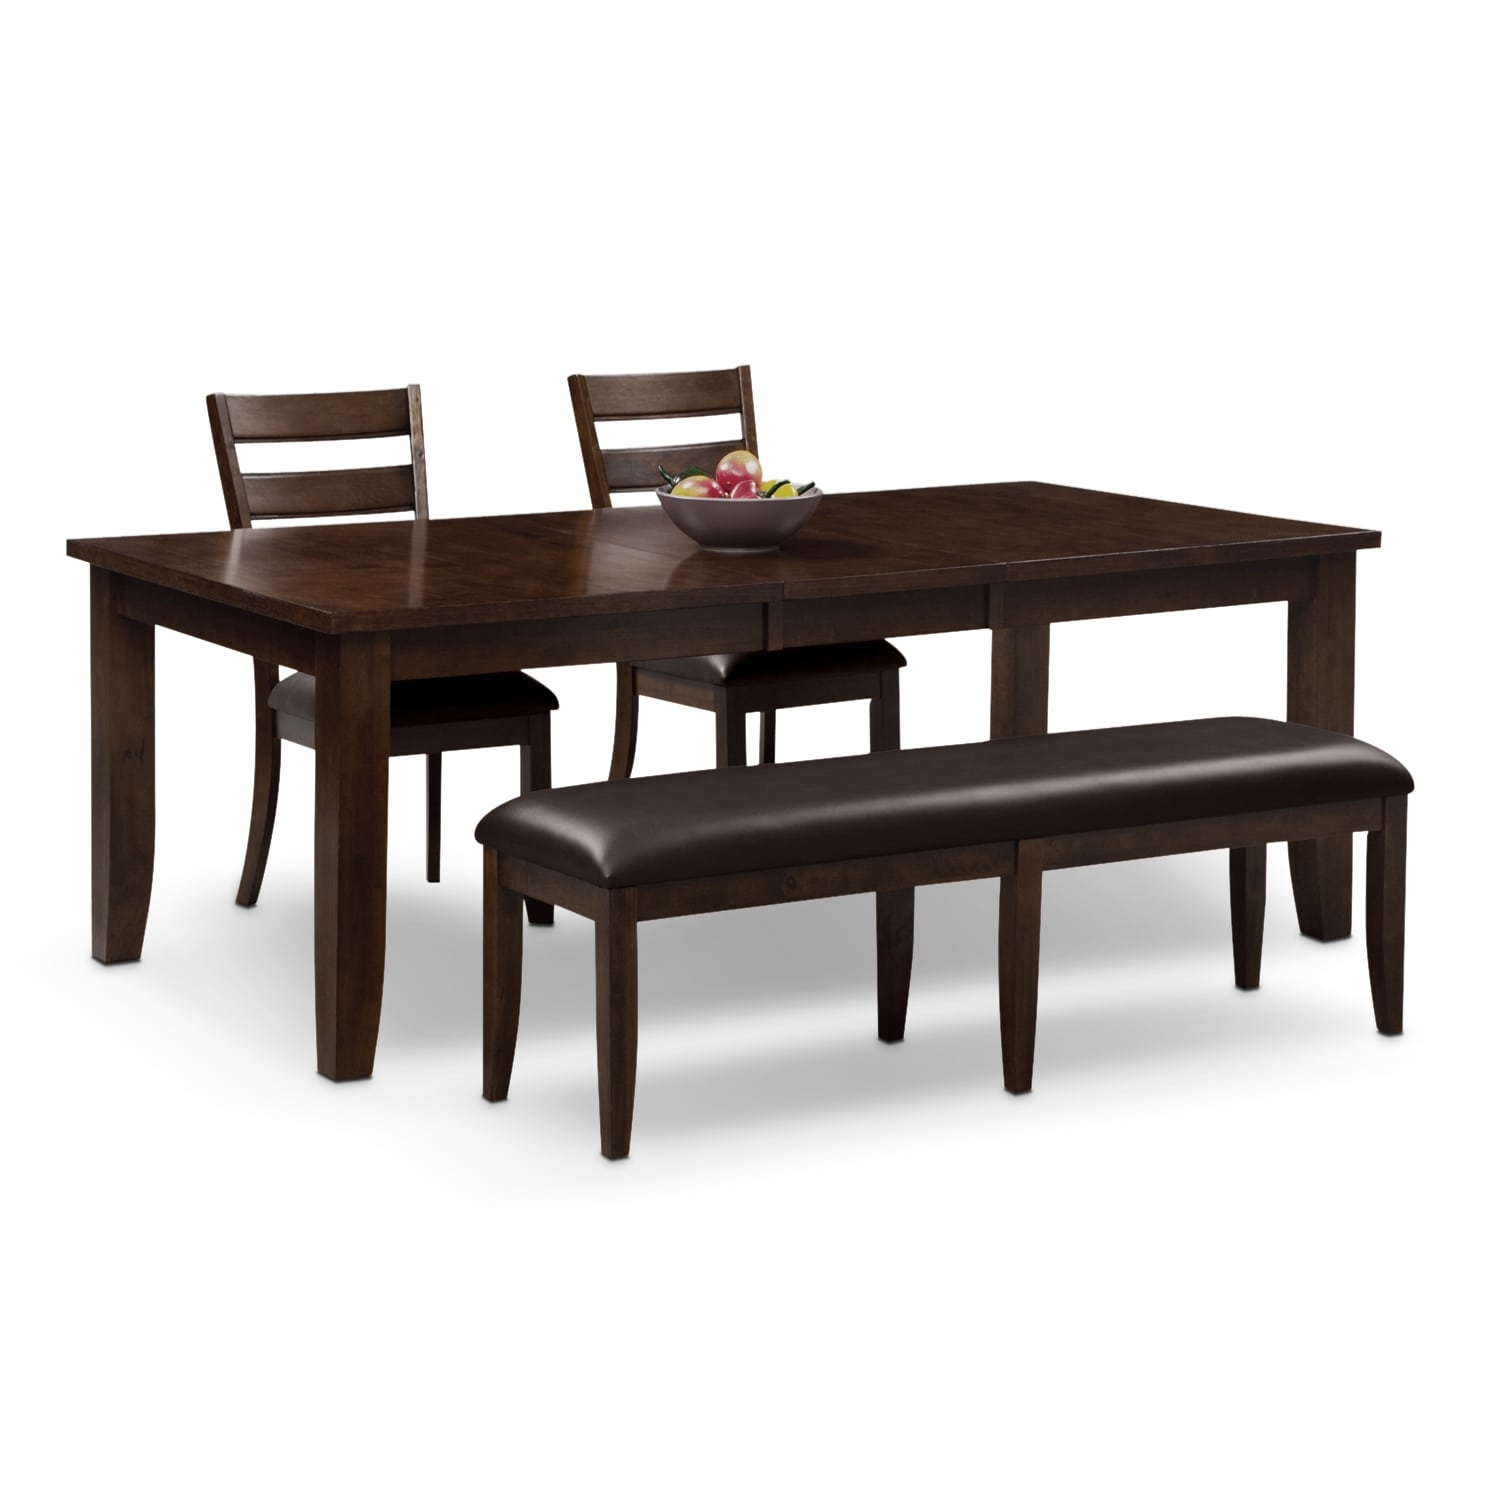 abaco dining table brown value city furniture. Black Bedroom Furniture Sets. Home Design Ideas